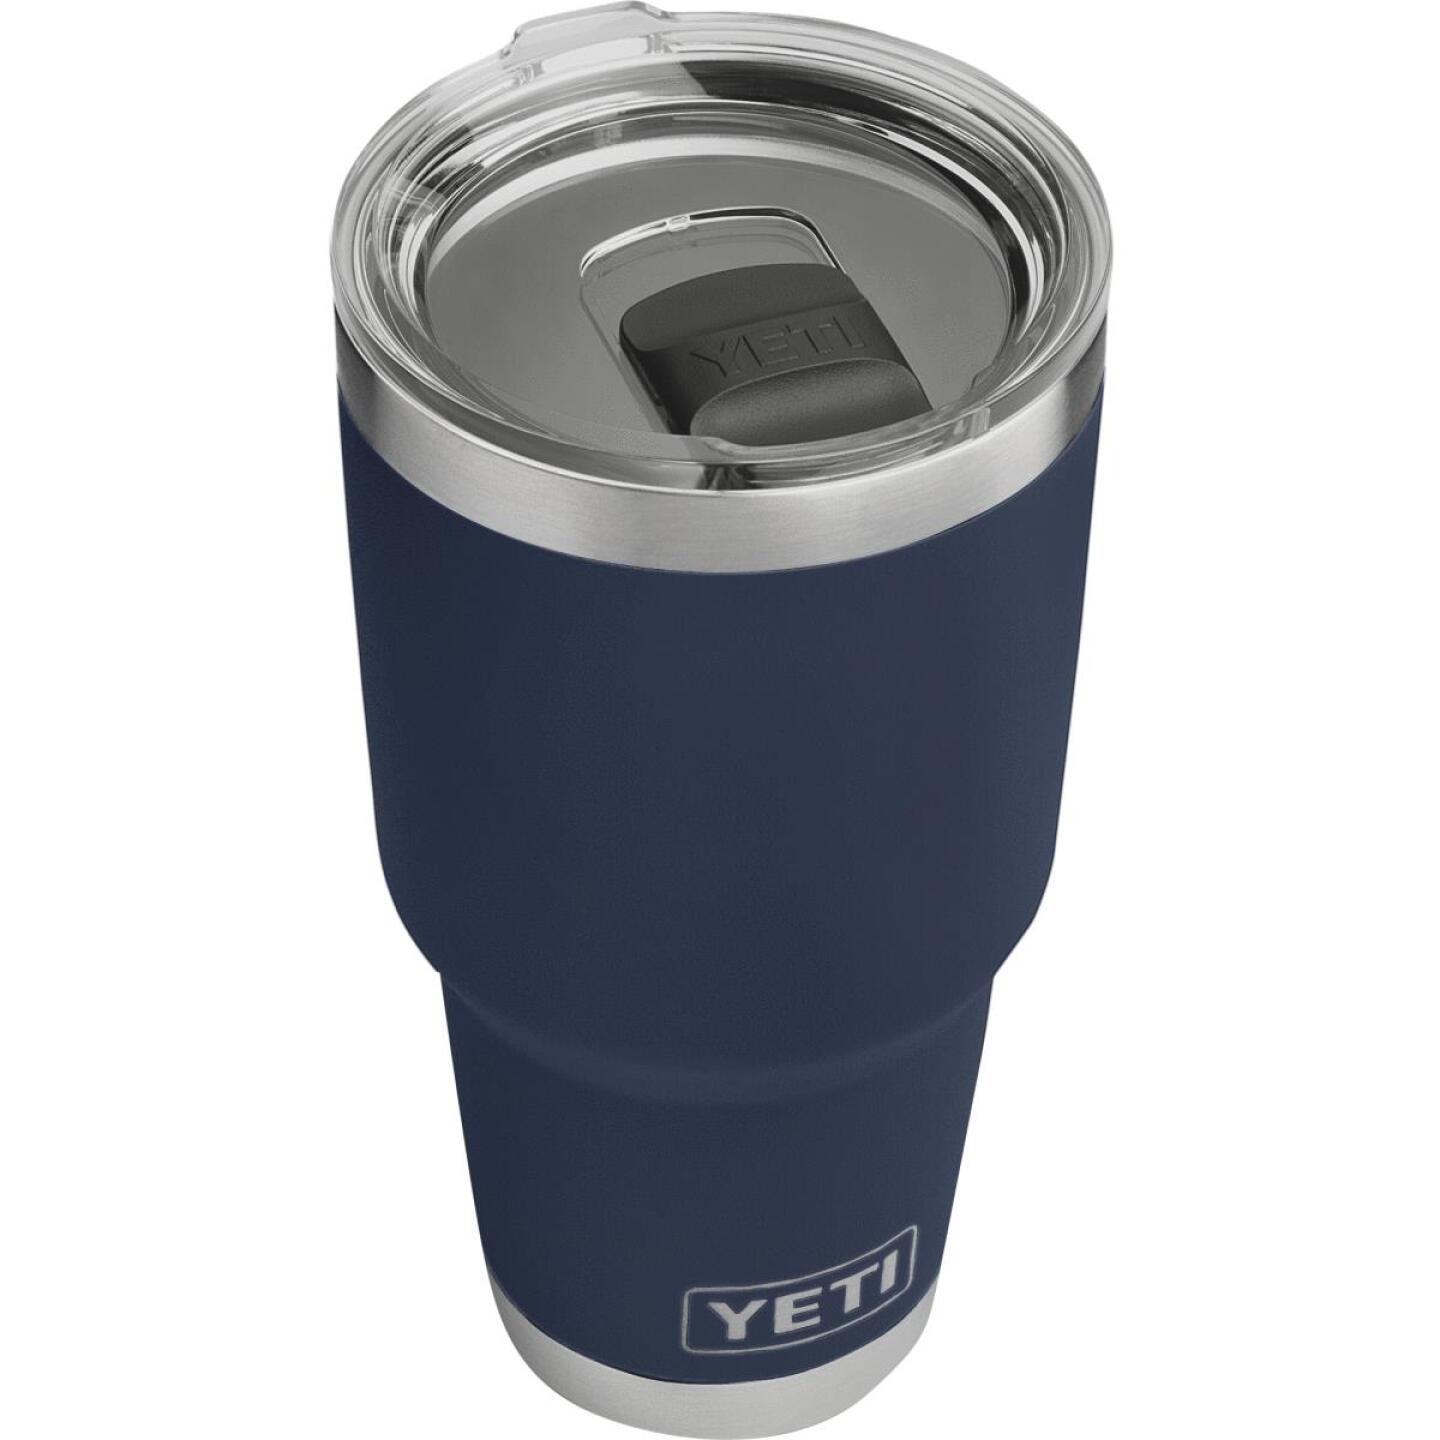 Yeti Rambler 30 Oz. Navy Blue Stainless Steel Insulated Tumbler with MagSlider Lid Image 1